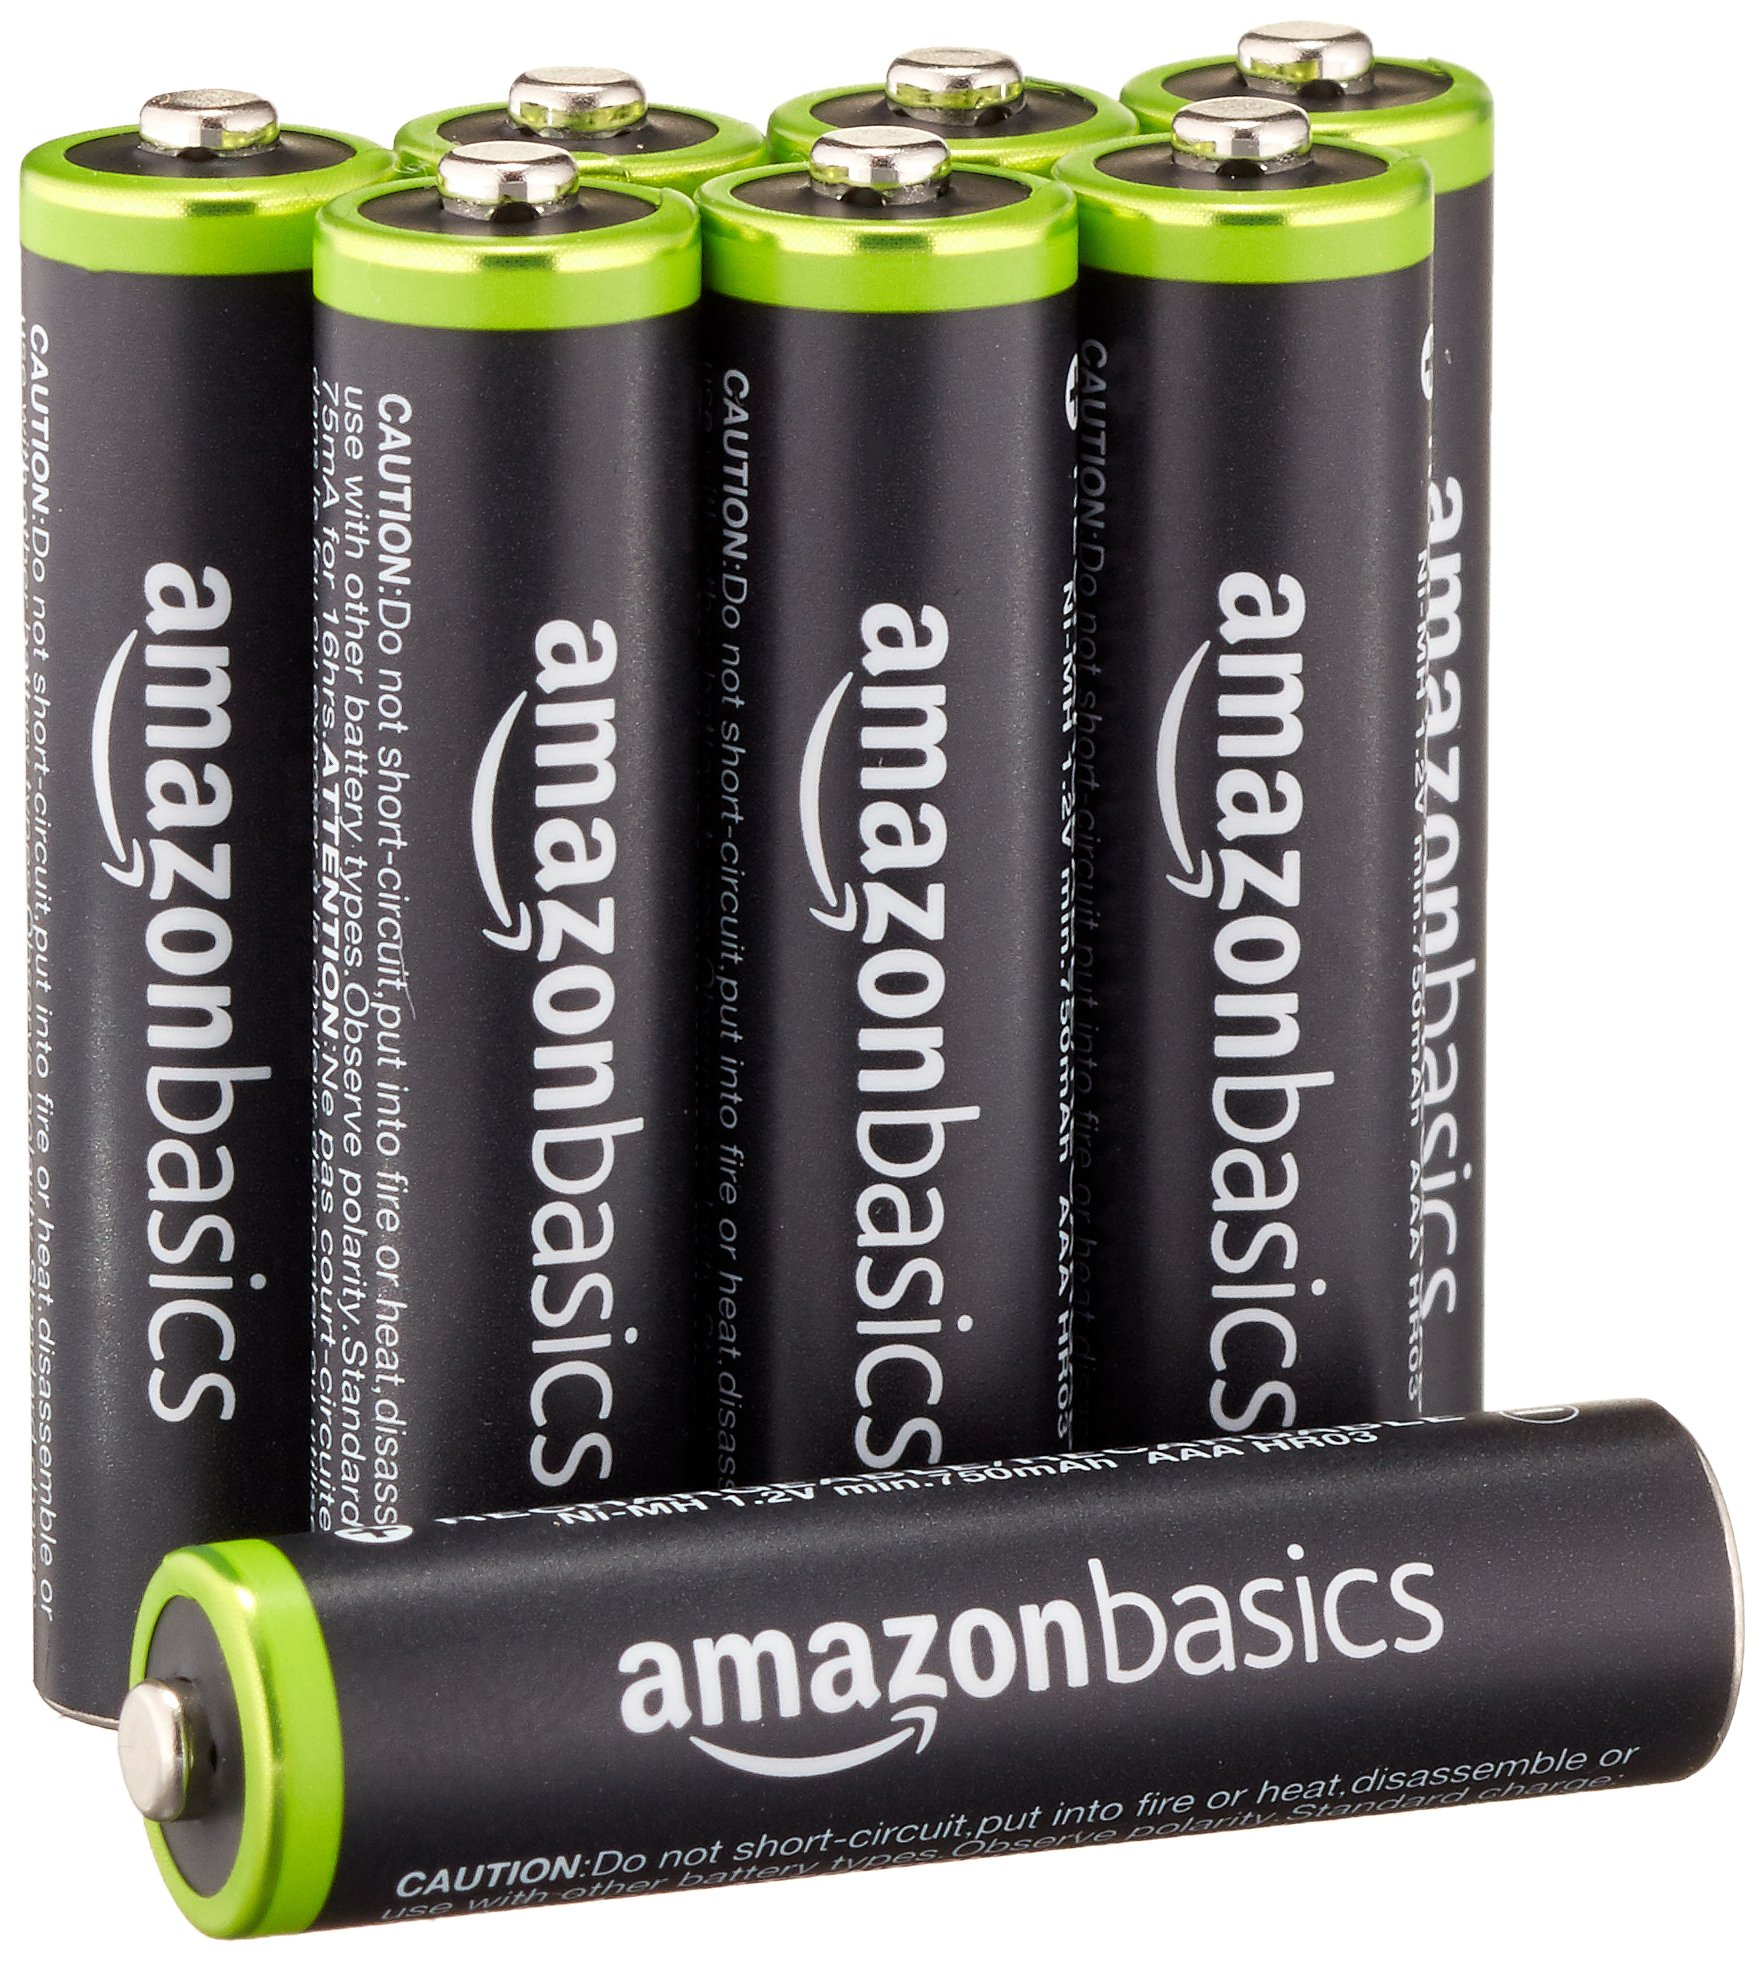 Best Rated In Camera Camcorder Batteries Helpful Customer Charger Battery Lithium Variable Current Up To 2a By L200 Amazonbasics Aaa Rechargeable 8 Pack Pre Charged Packaging May Vary